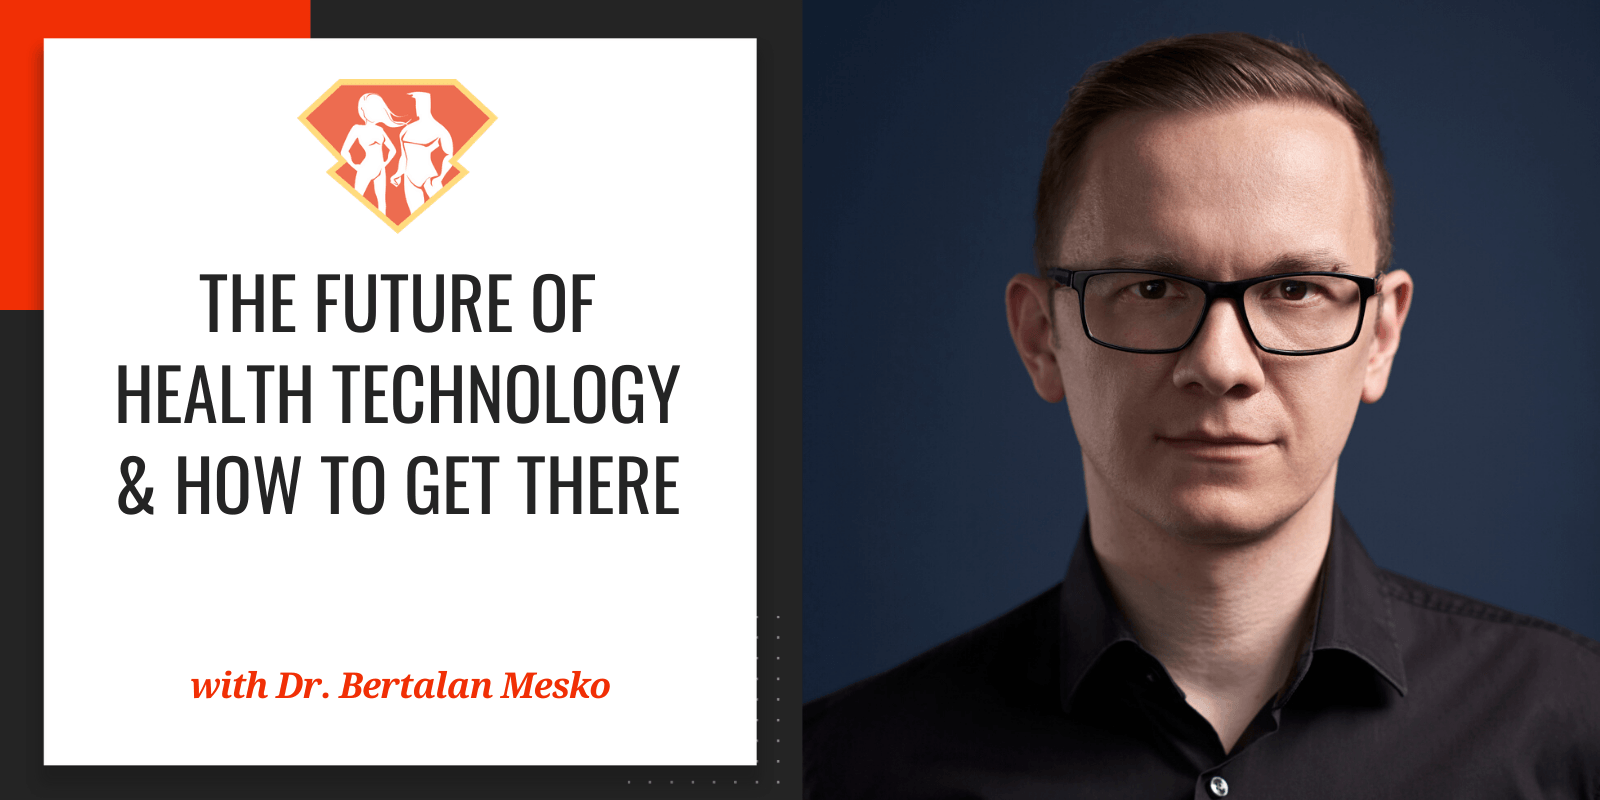 In this episode with Dr. Bertalan Mesko, we discover what the future of health technology looks like, and what needs to happen for the world to get there.